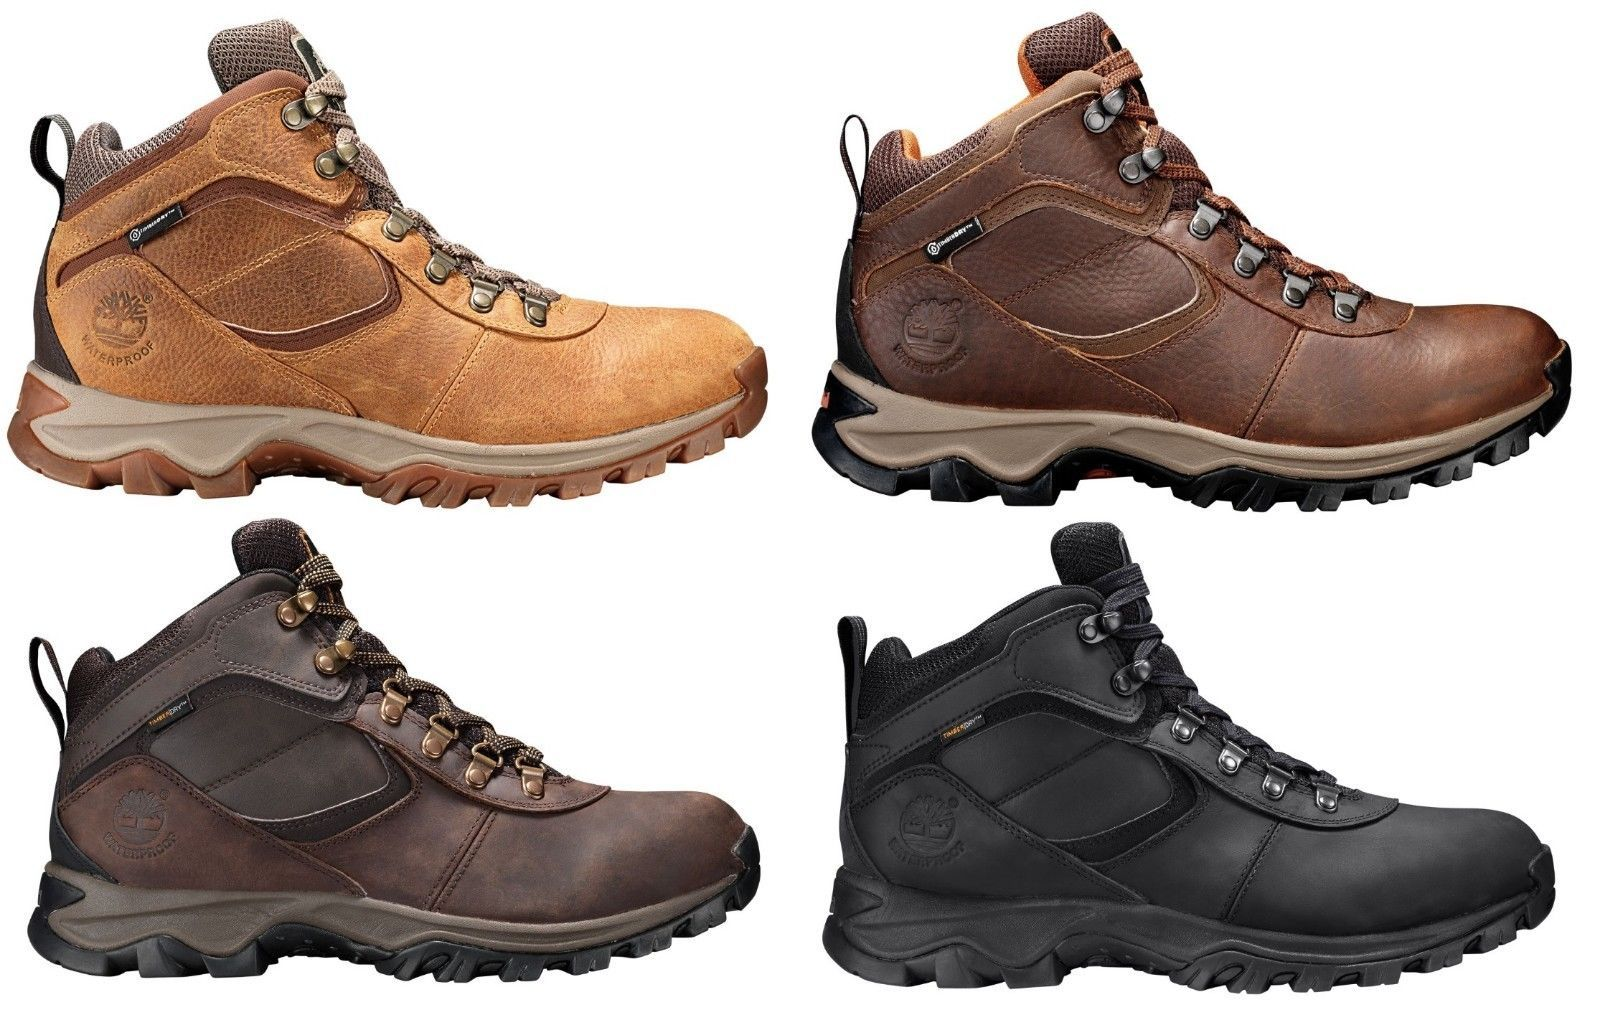 b91a0afcf2b NEW Timberland Men s MT Maddsen Mid WaterProof Hiking Trail Boots ...